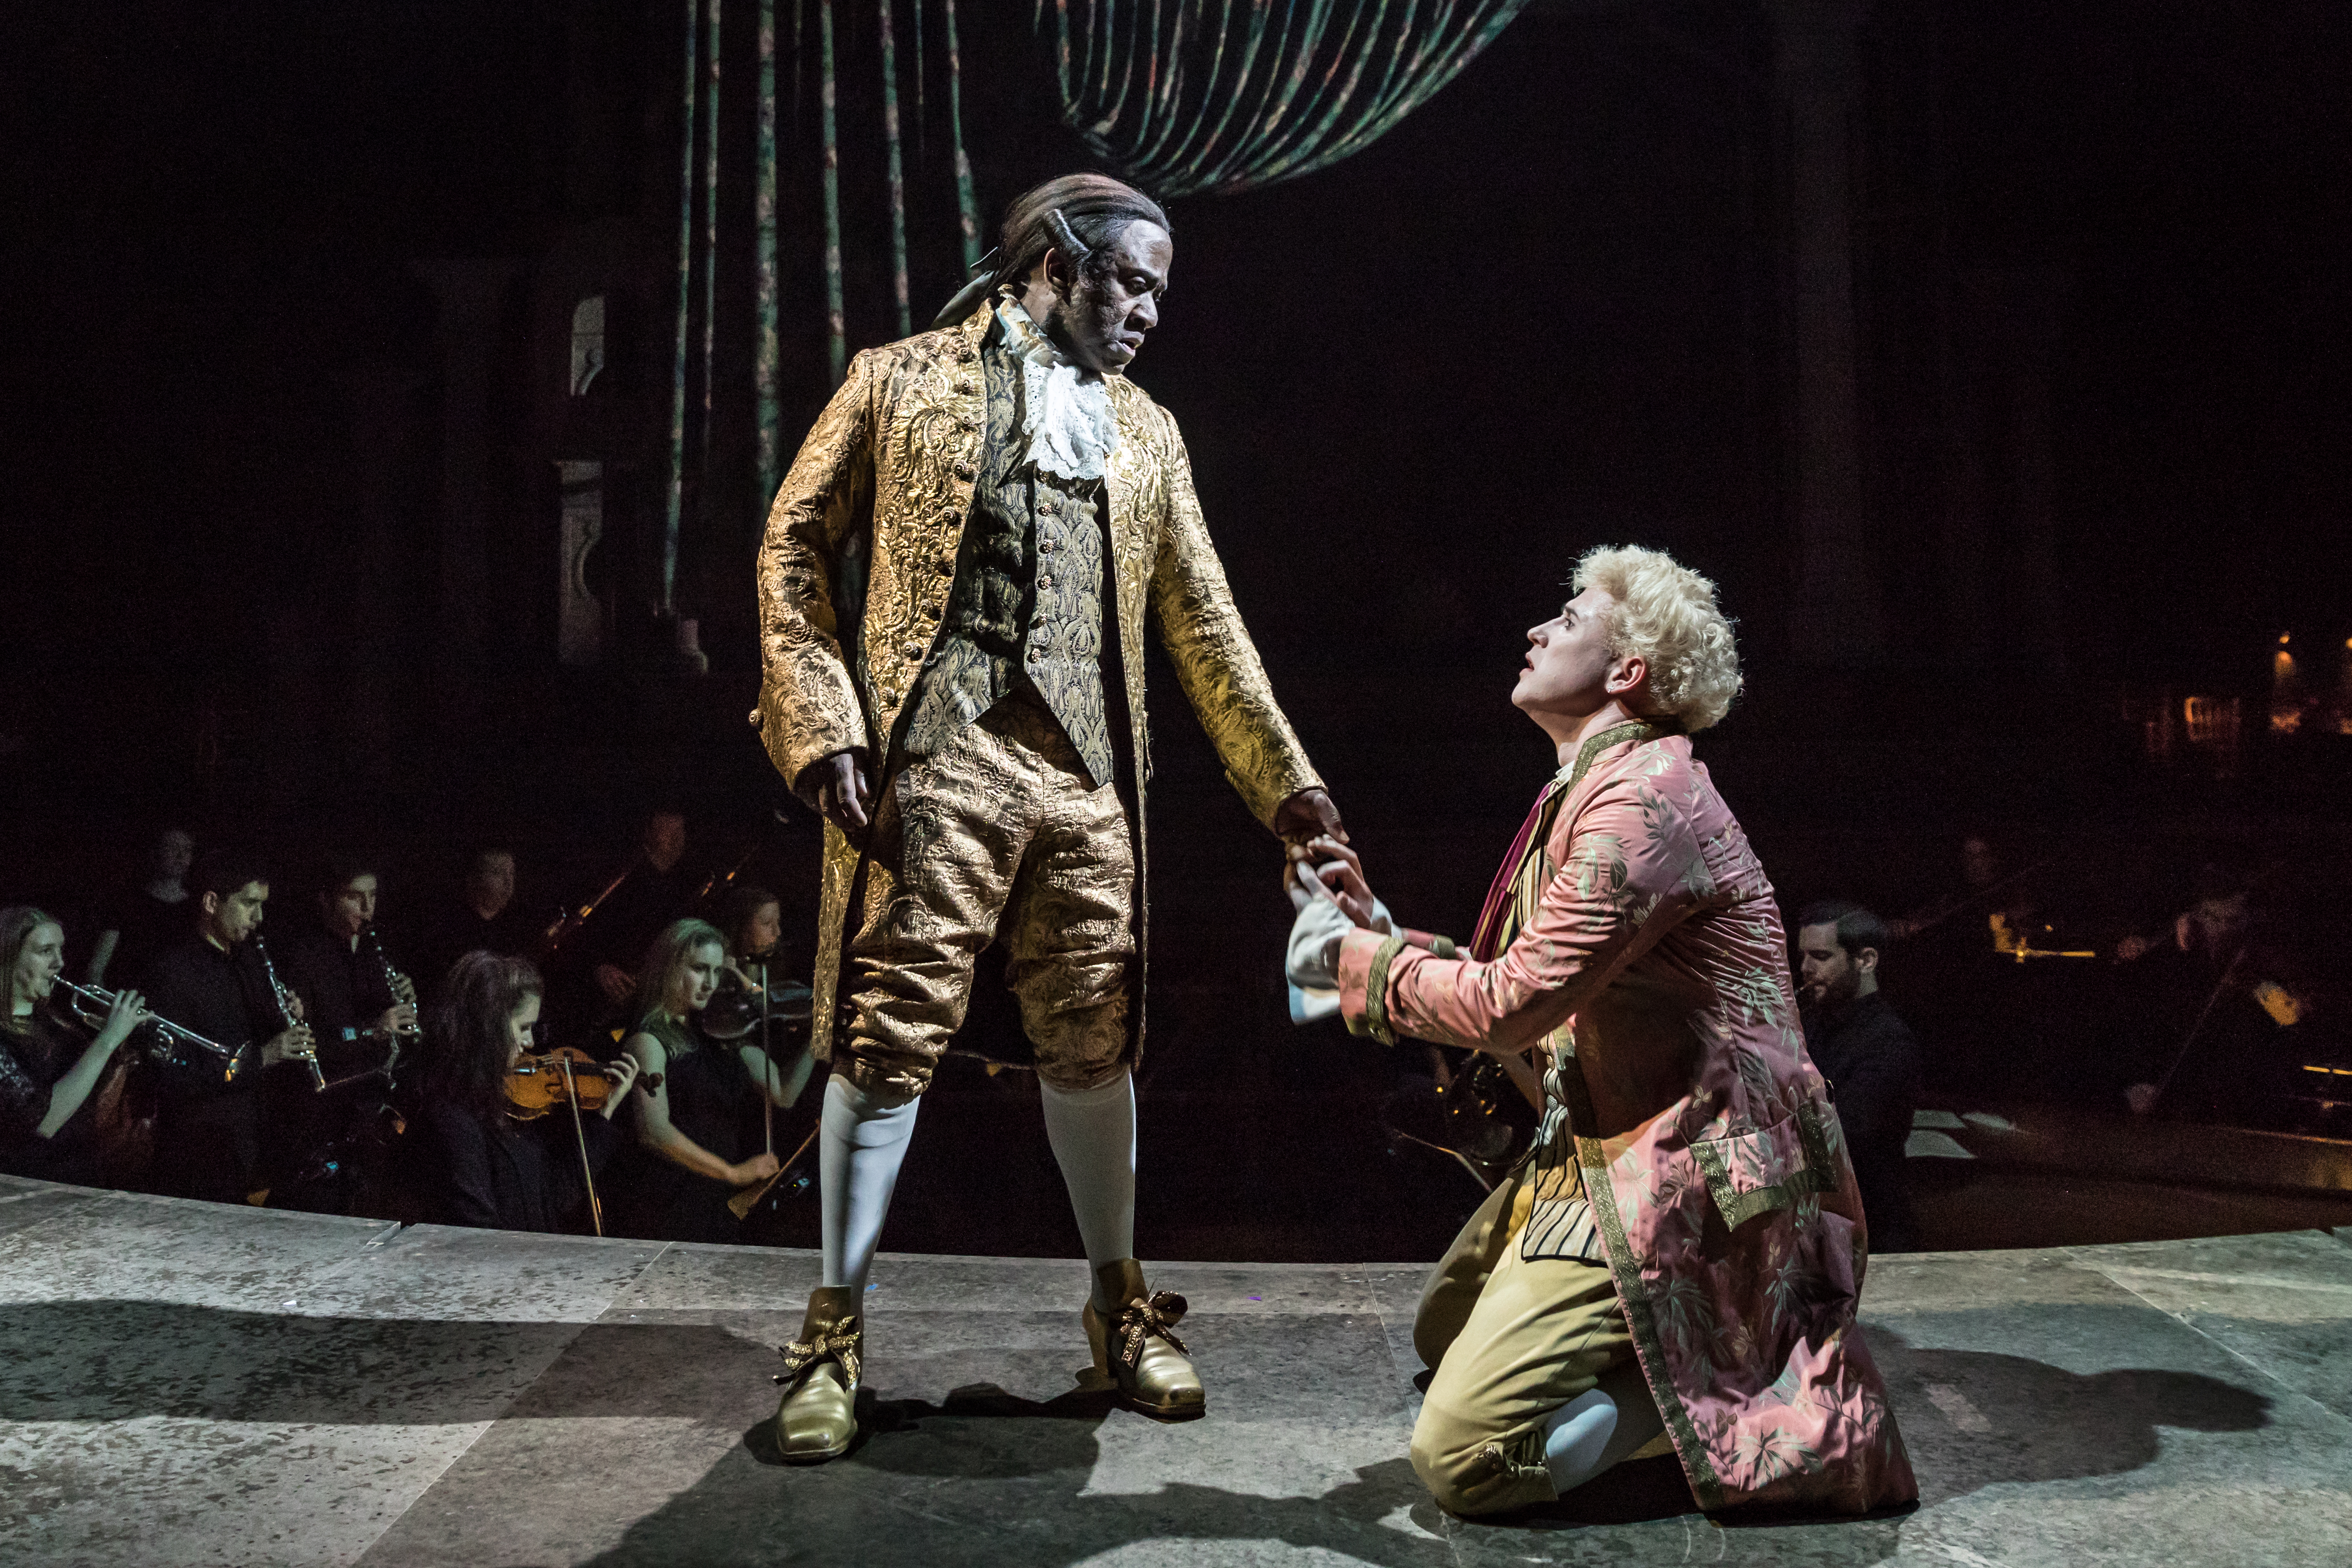 Lucian Msamati as Antonio Salieri and Adam Gillen as Wolfgang Mozart in Amadeus at the National Theatre (c) Marc Brenner